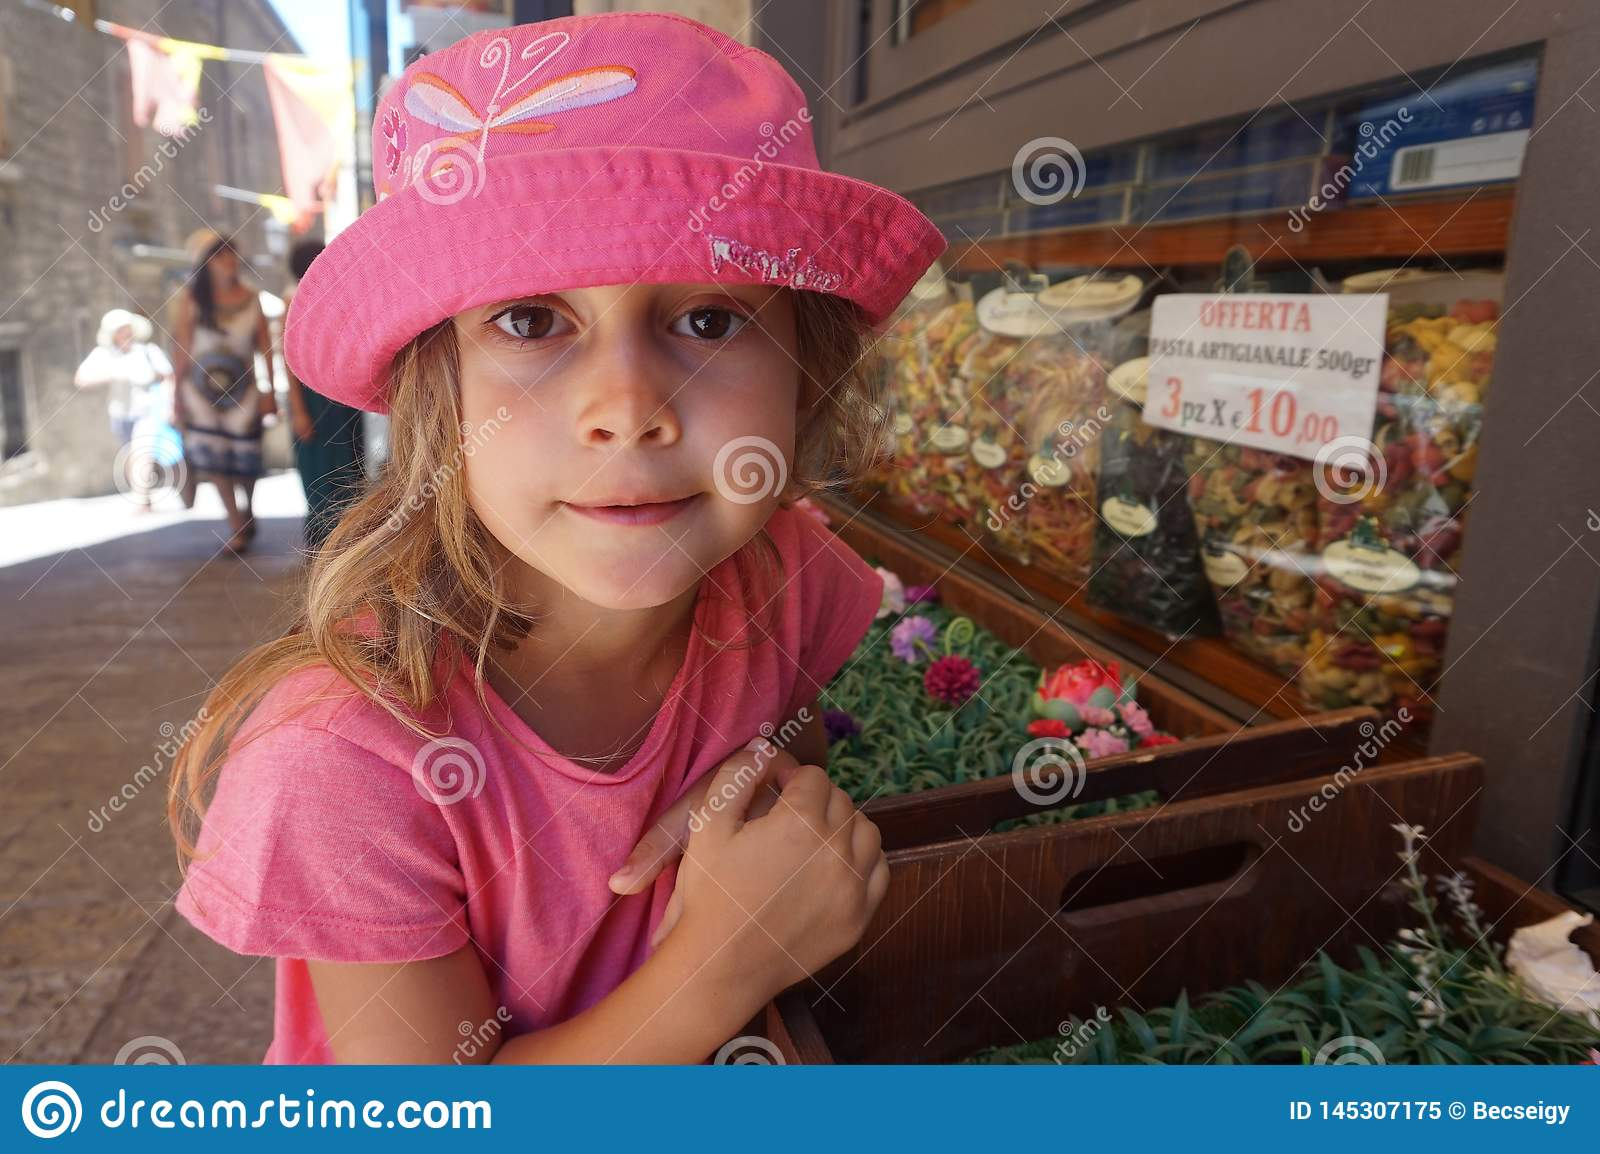 Little girl with pink hat in front of a grocery store, San Marino